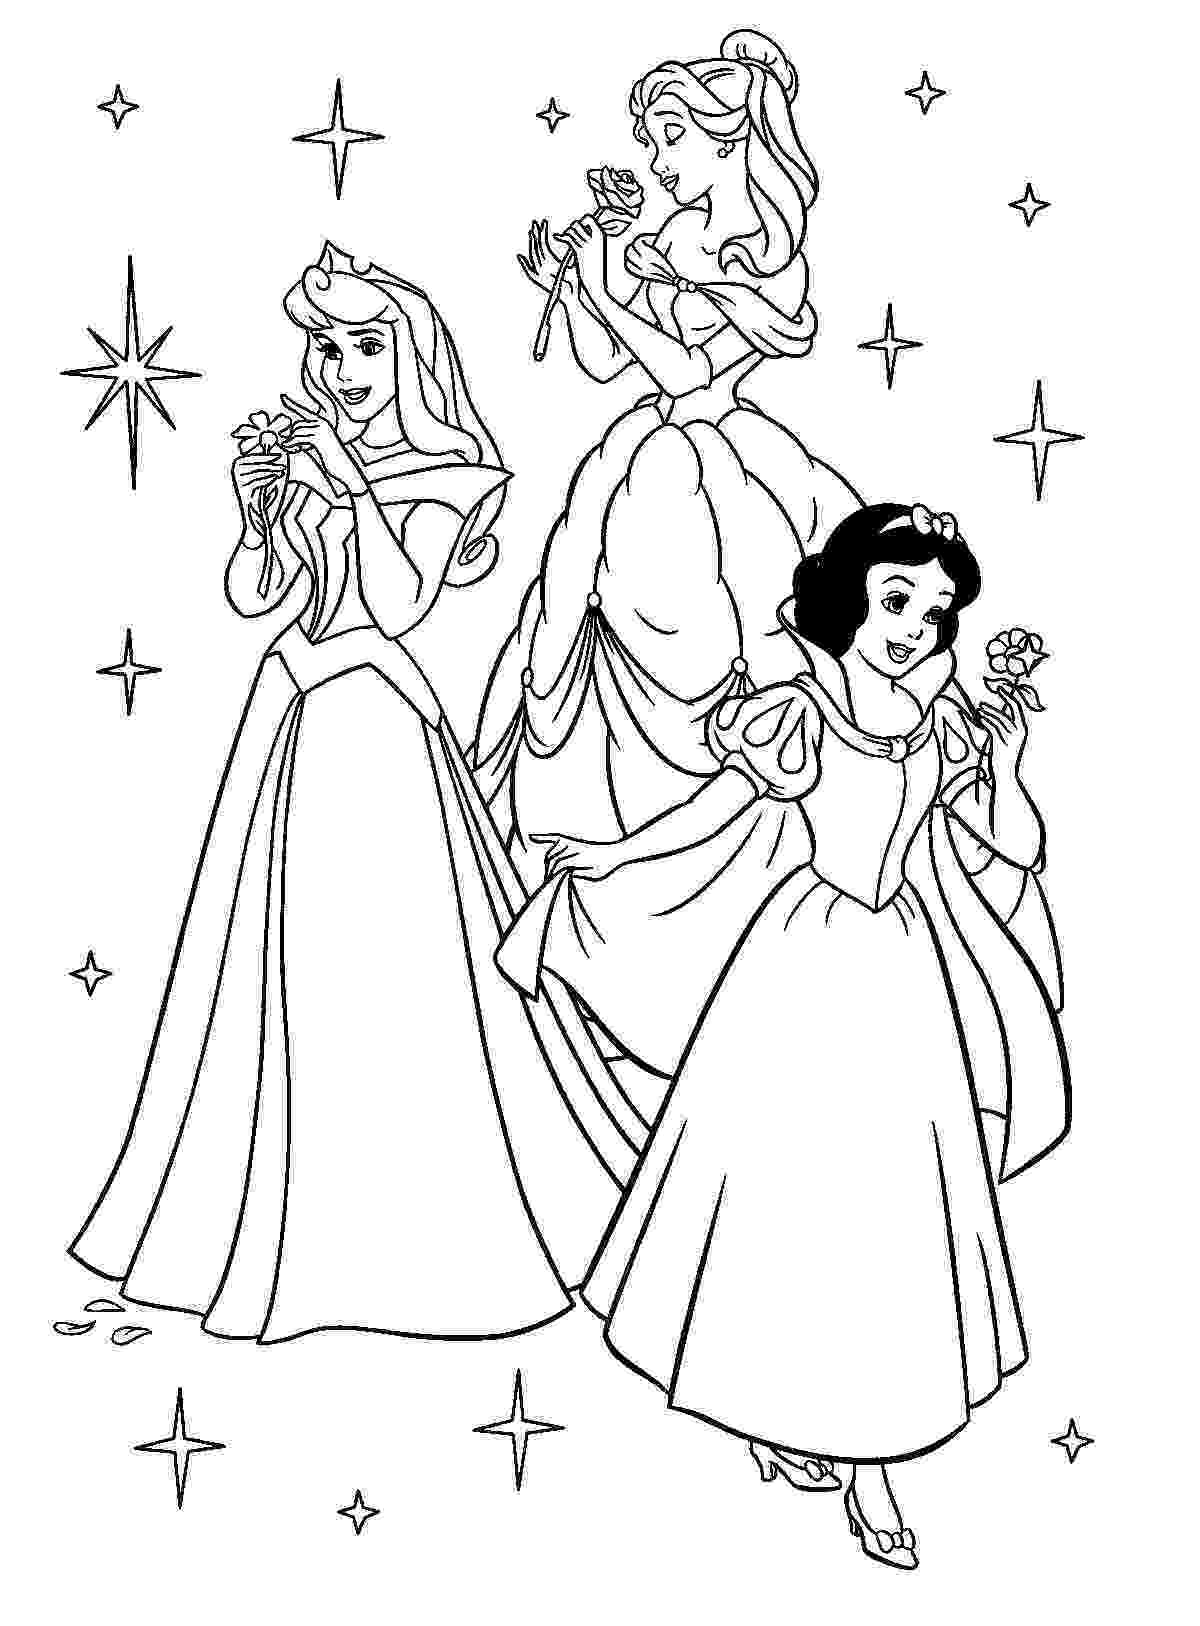 princess coloring pages online get this printable disney princess coloring pages online princess online pages coloring